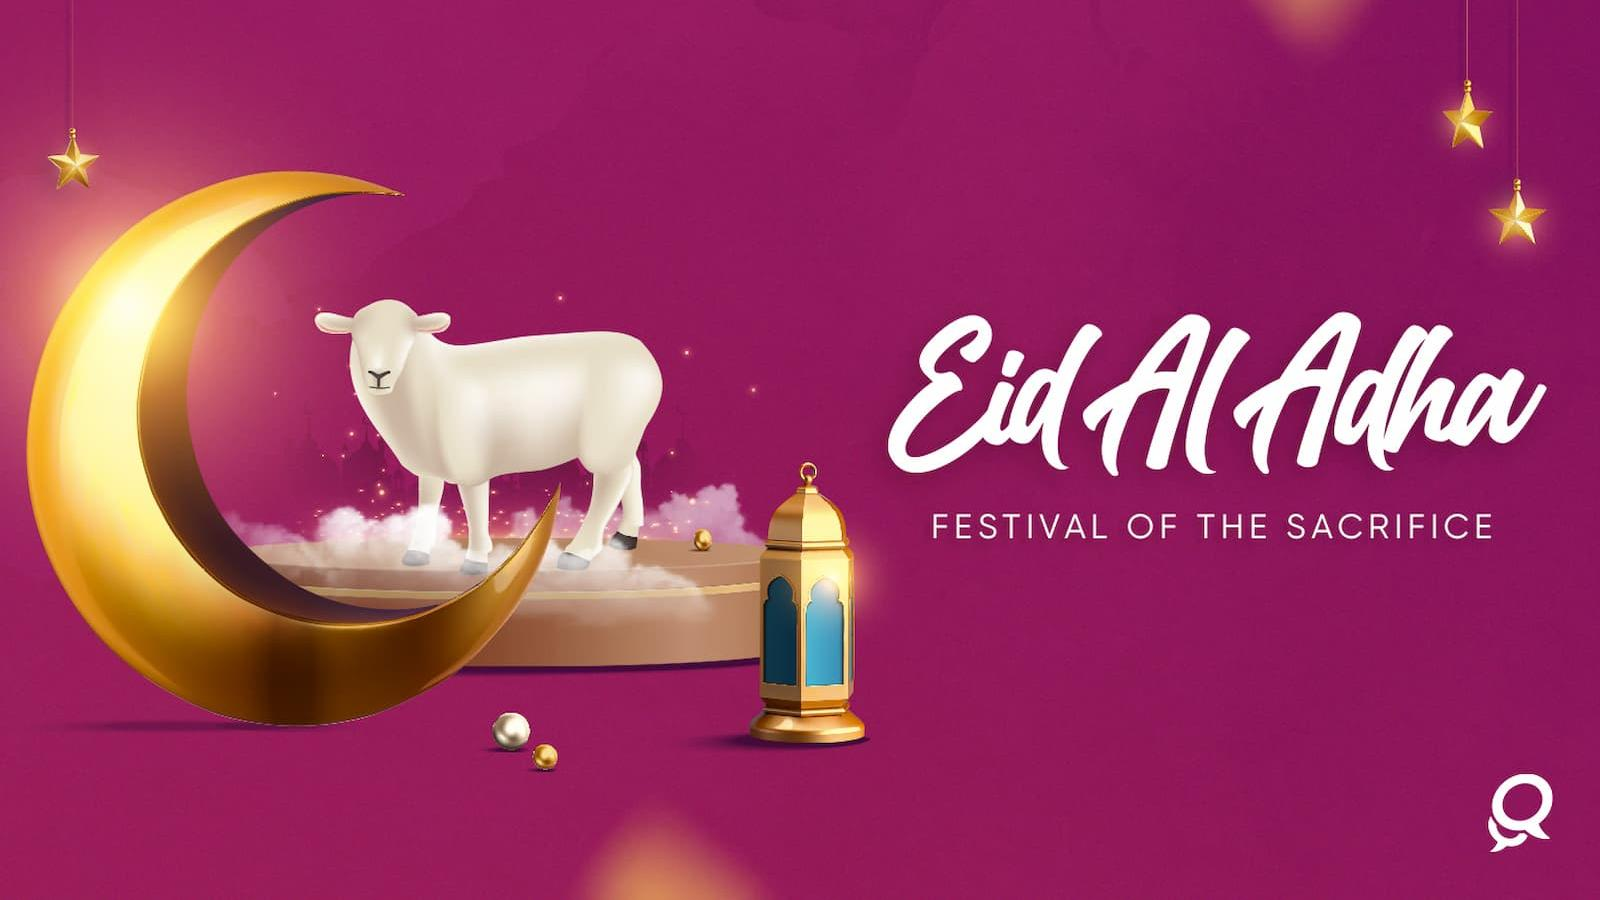 WATCH: All you need to know about Eid Al Adha 2021 in Qatar